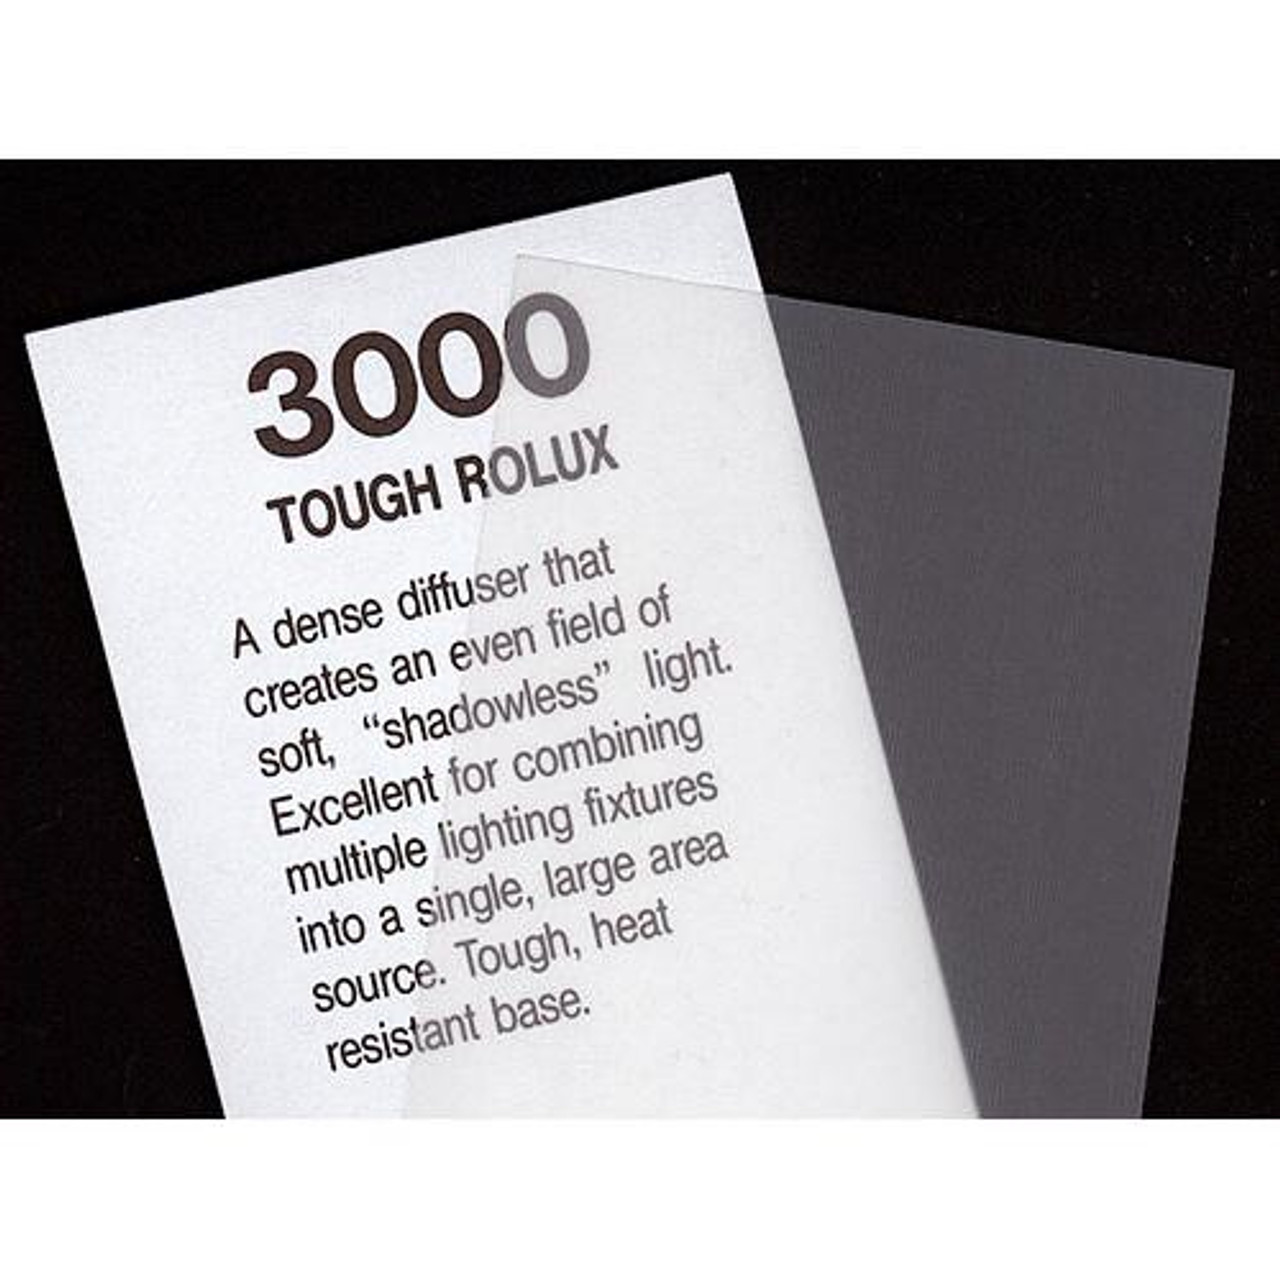 "#3000 Rosco Cinegel Tough Rolux 20x24"" Light Diffusion, Gels"